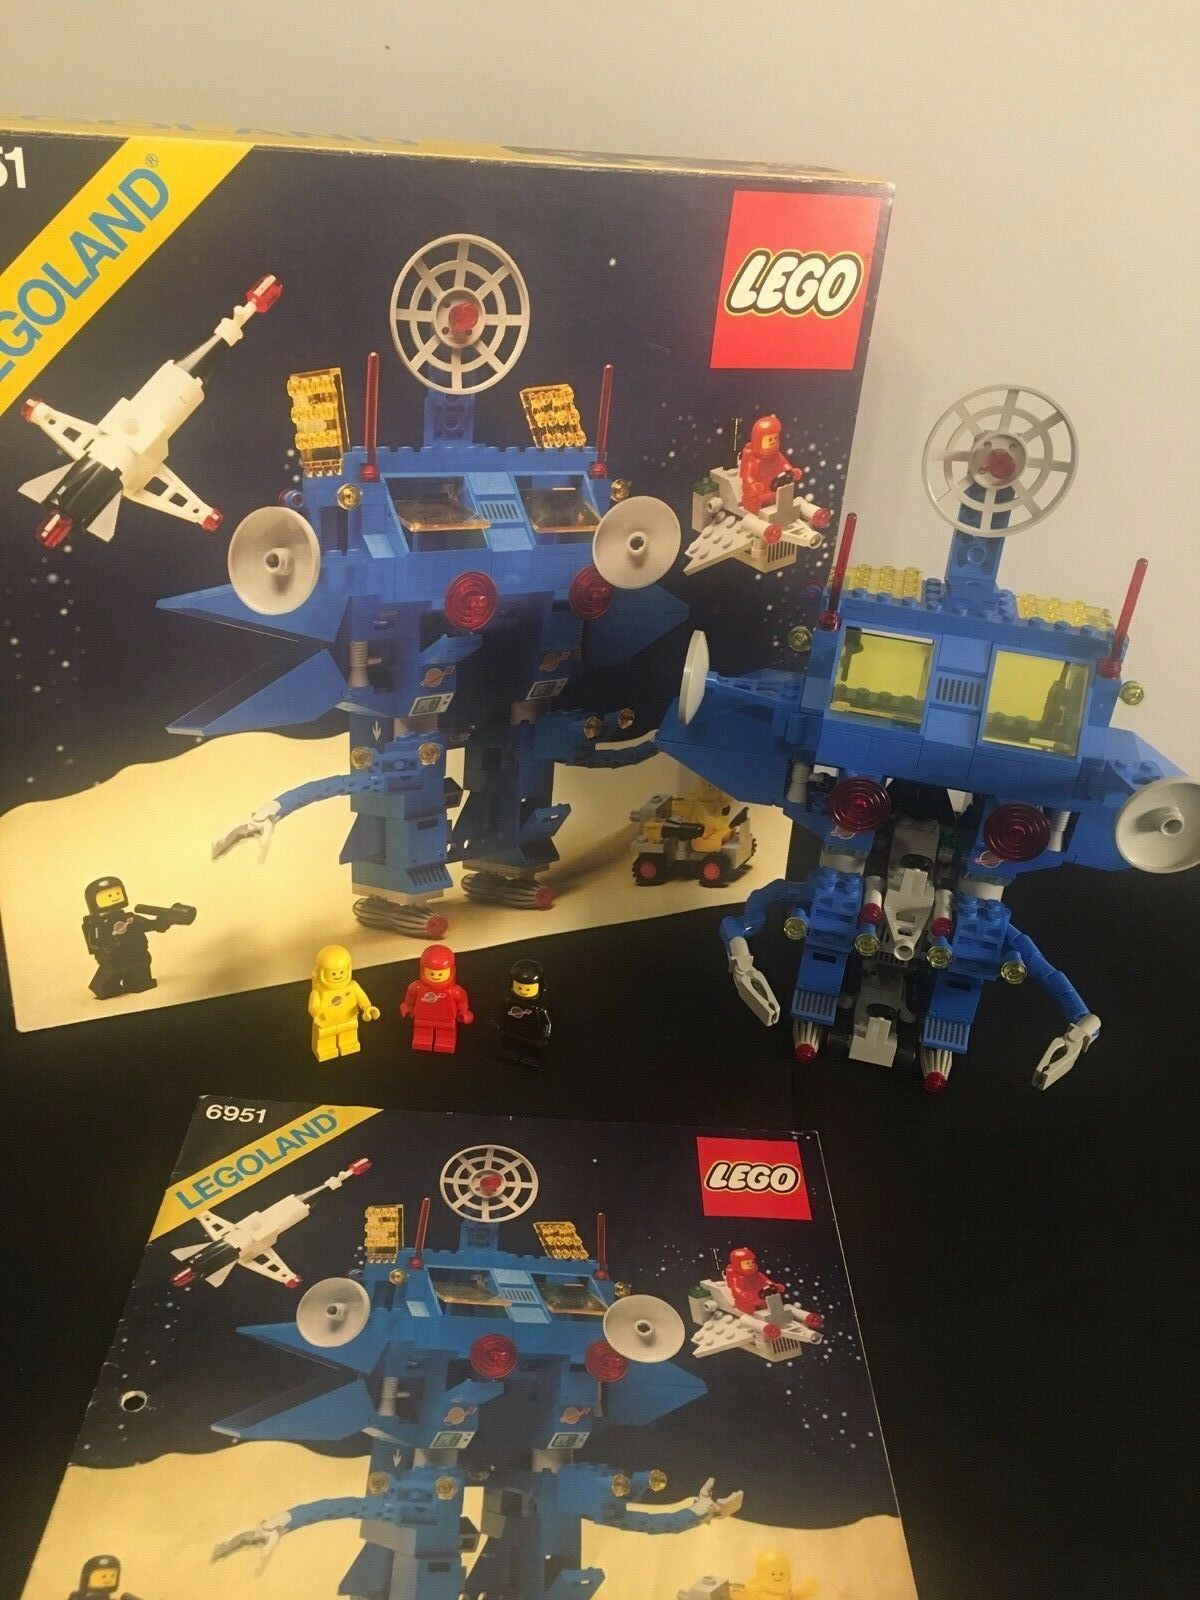 Lego 6951 Classic Space Robot Robot Robot Command Center Komplett